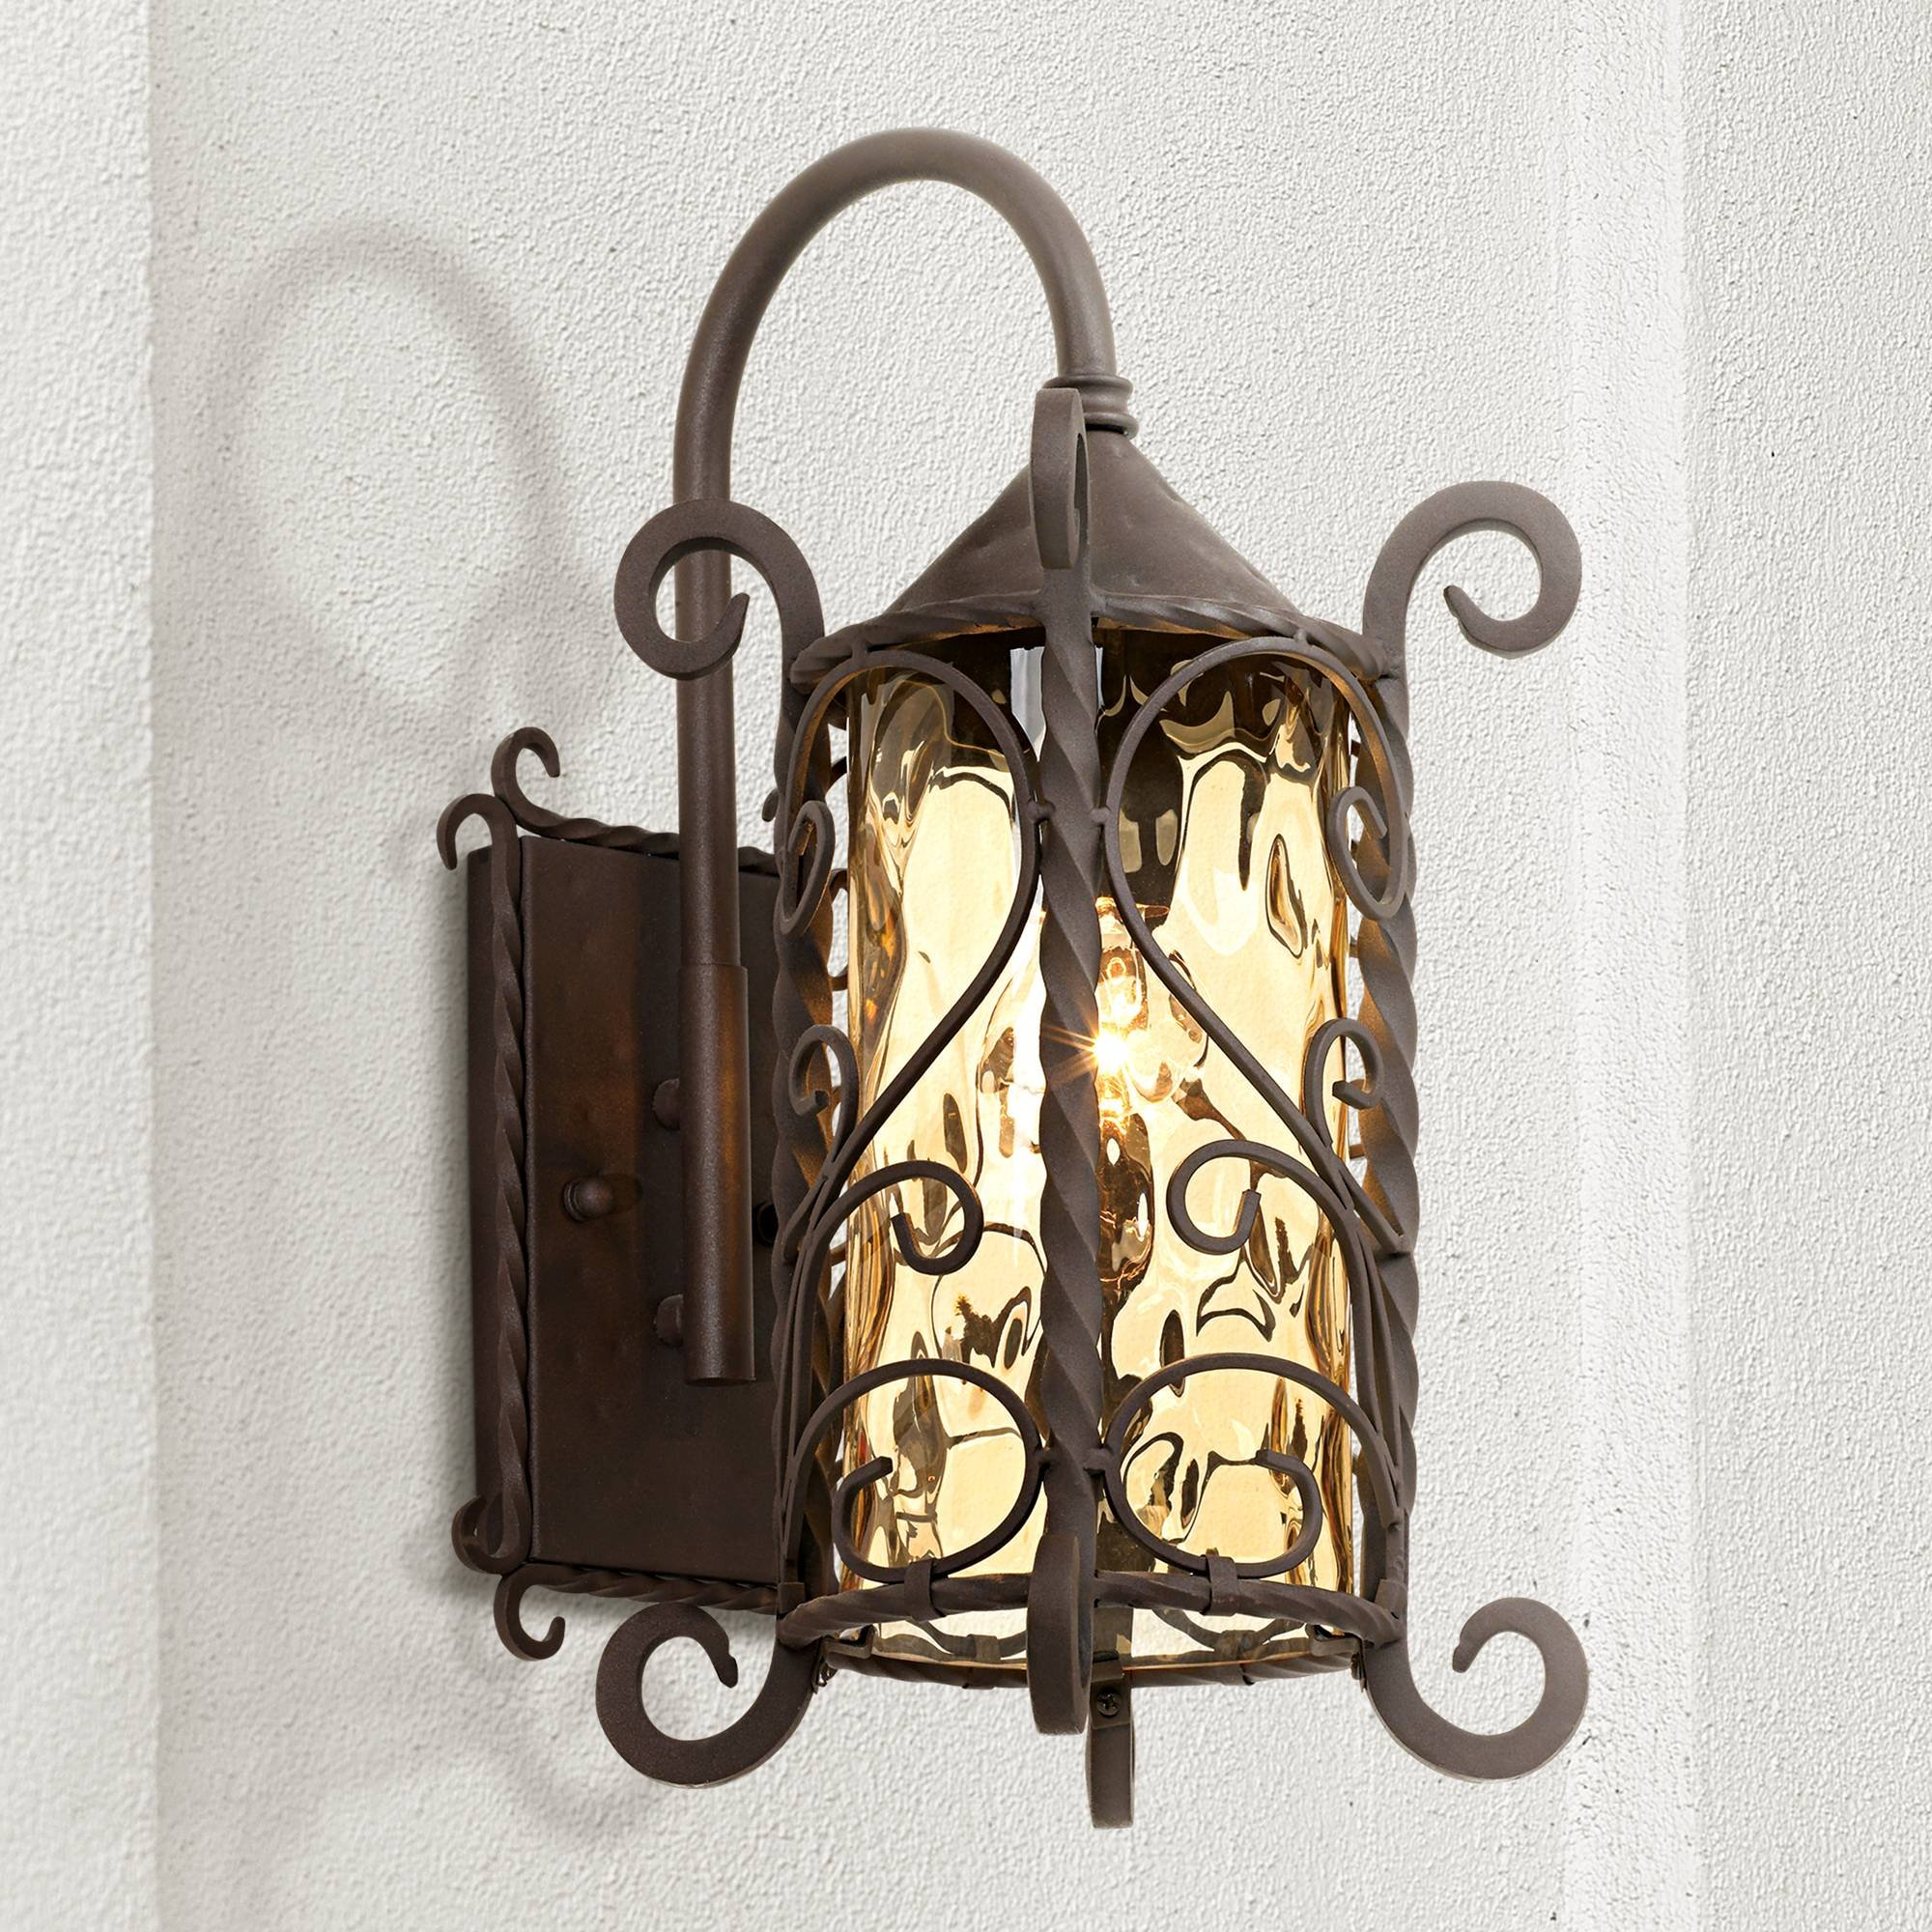 Casa Seville Rustic Outdoor Wall Light Fixture Mediterranean Inspired Dark Walnut Iron Twists 18 1/2'' Champagne Hammered Glass for Exterior House Porch Patio Deck - John Timberland by John Timberland (Image #1)